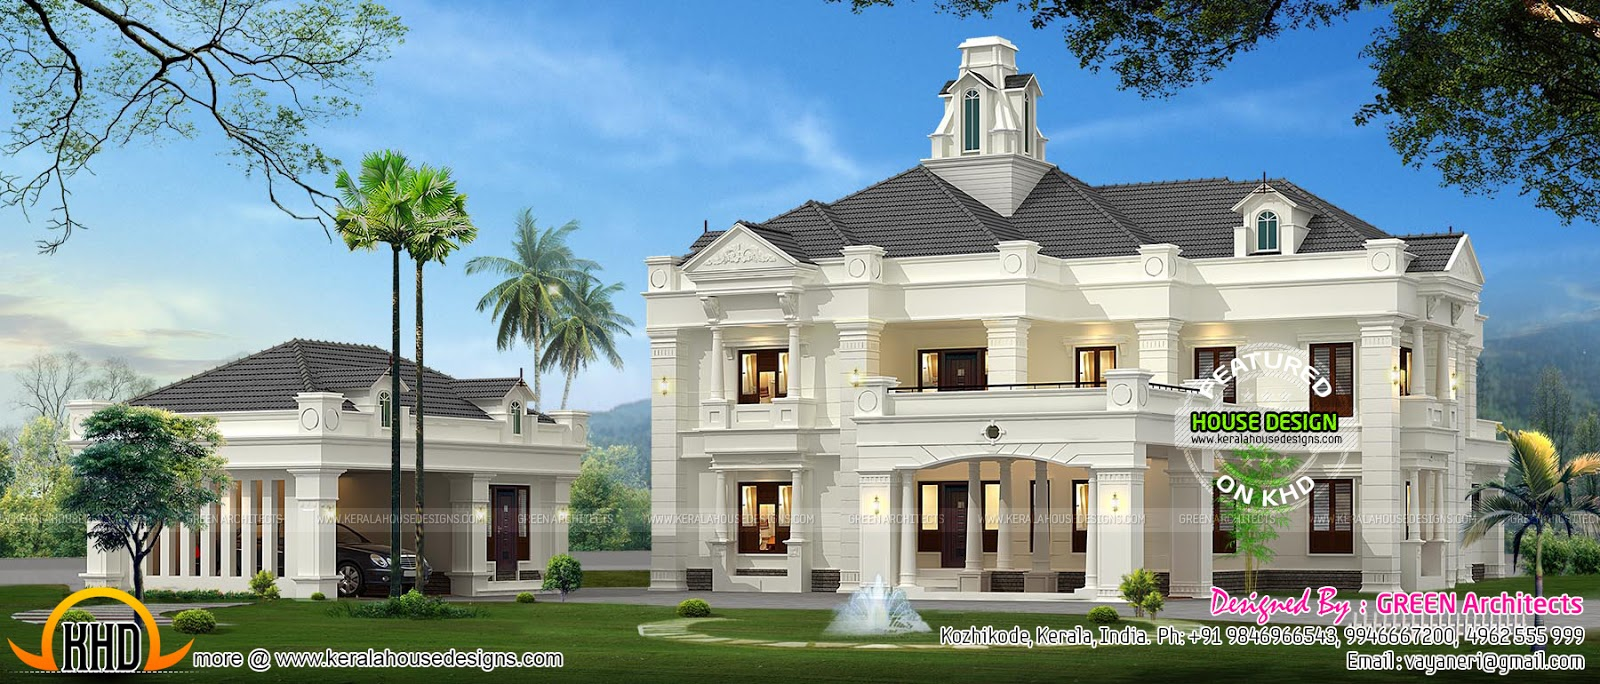 Colonial style indian house kerala home design and floor for Colonial home designs